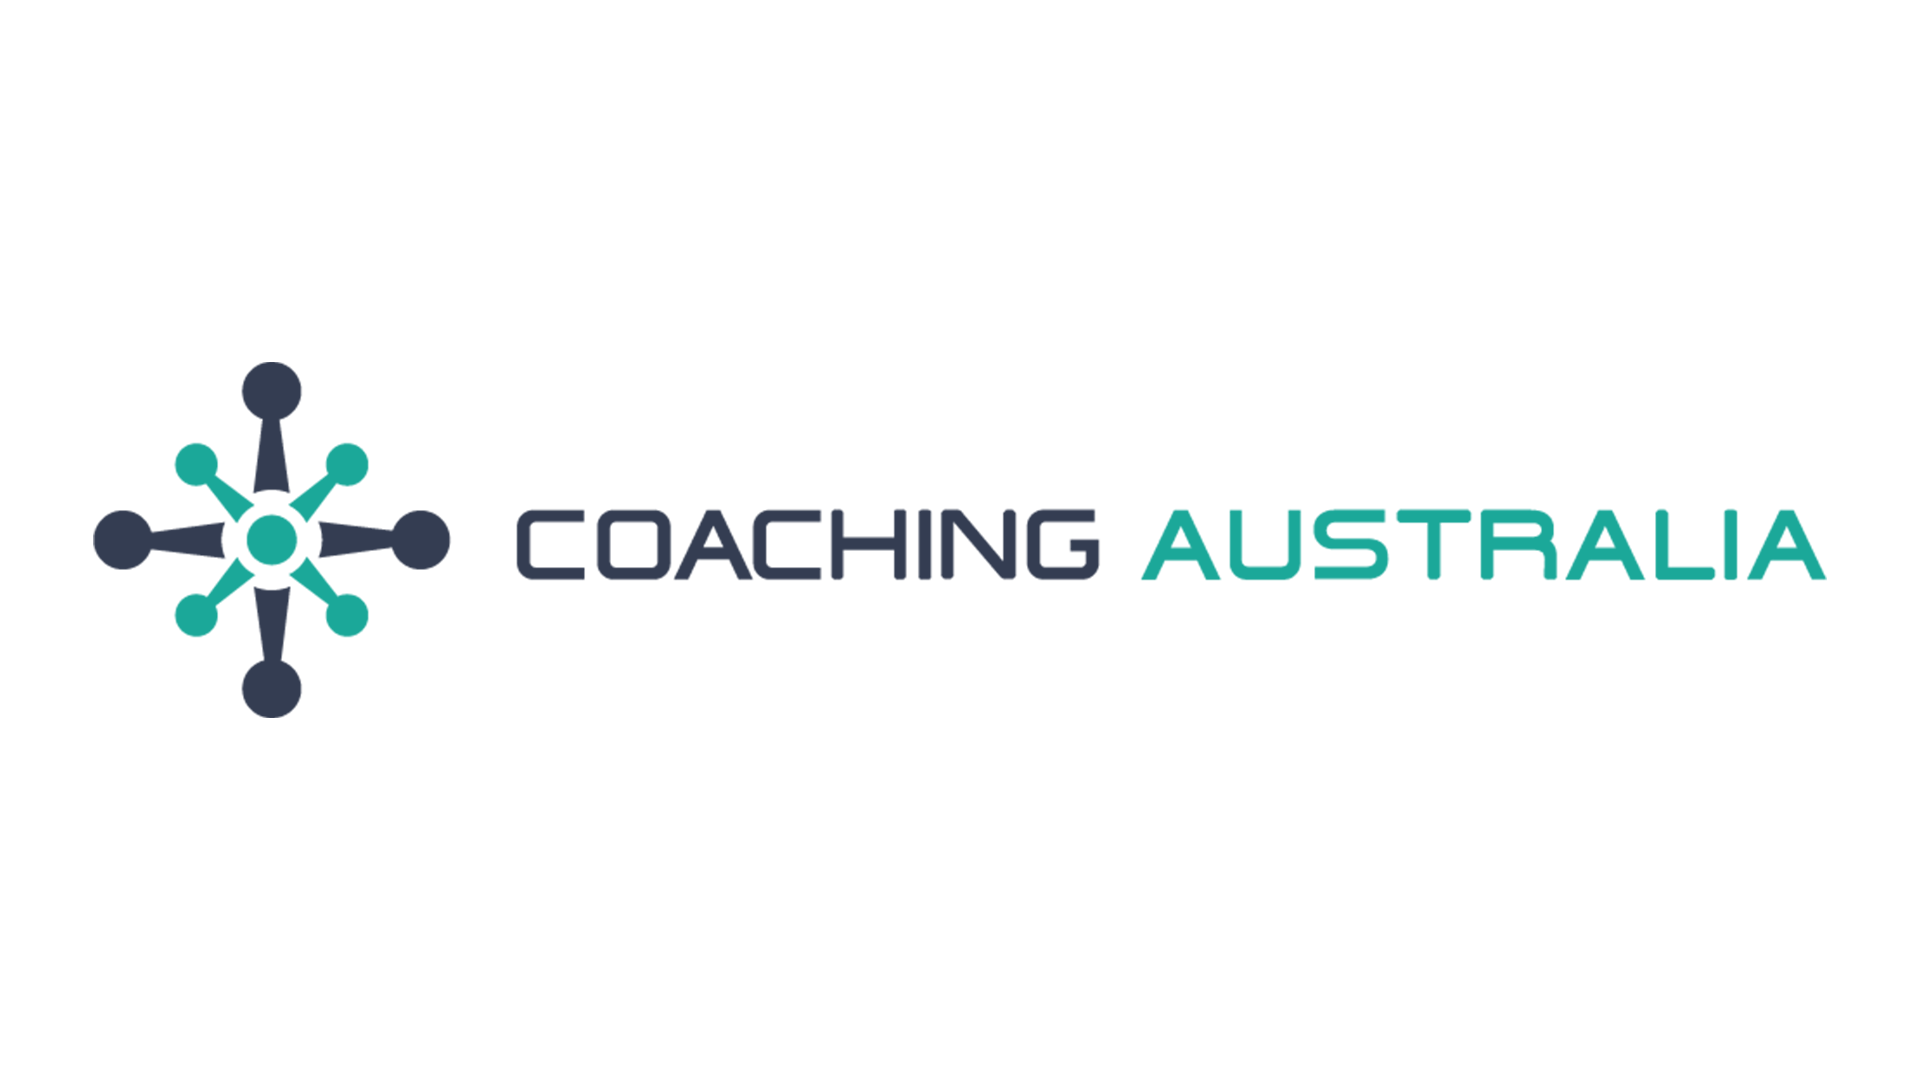 Coaching Australia - strategic partner with CCS Corporation - logo